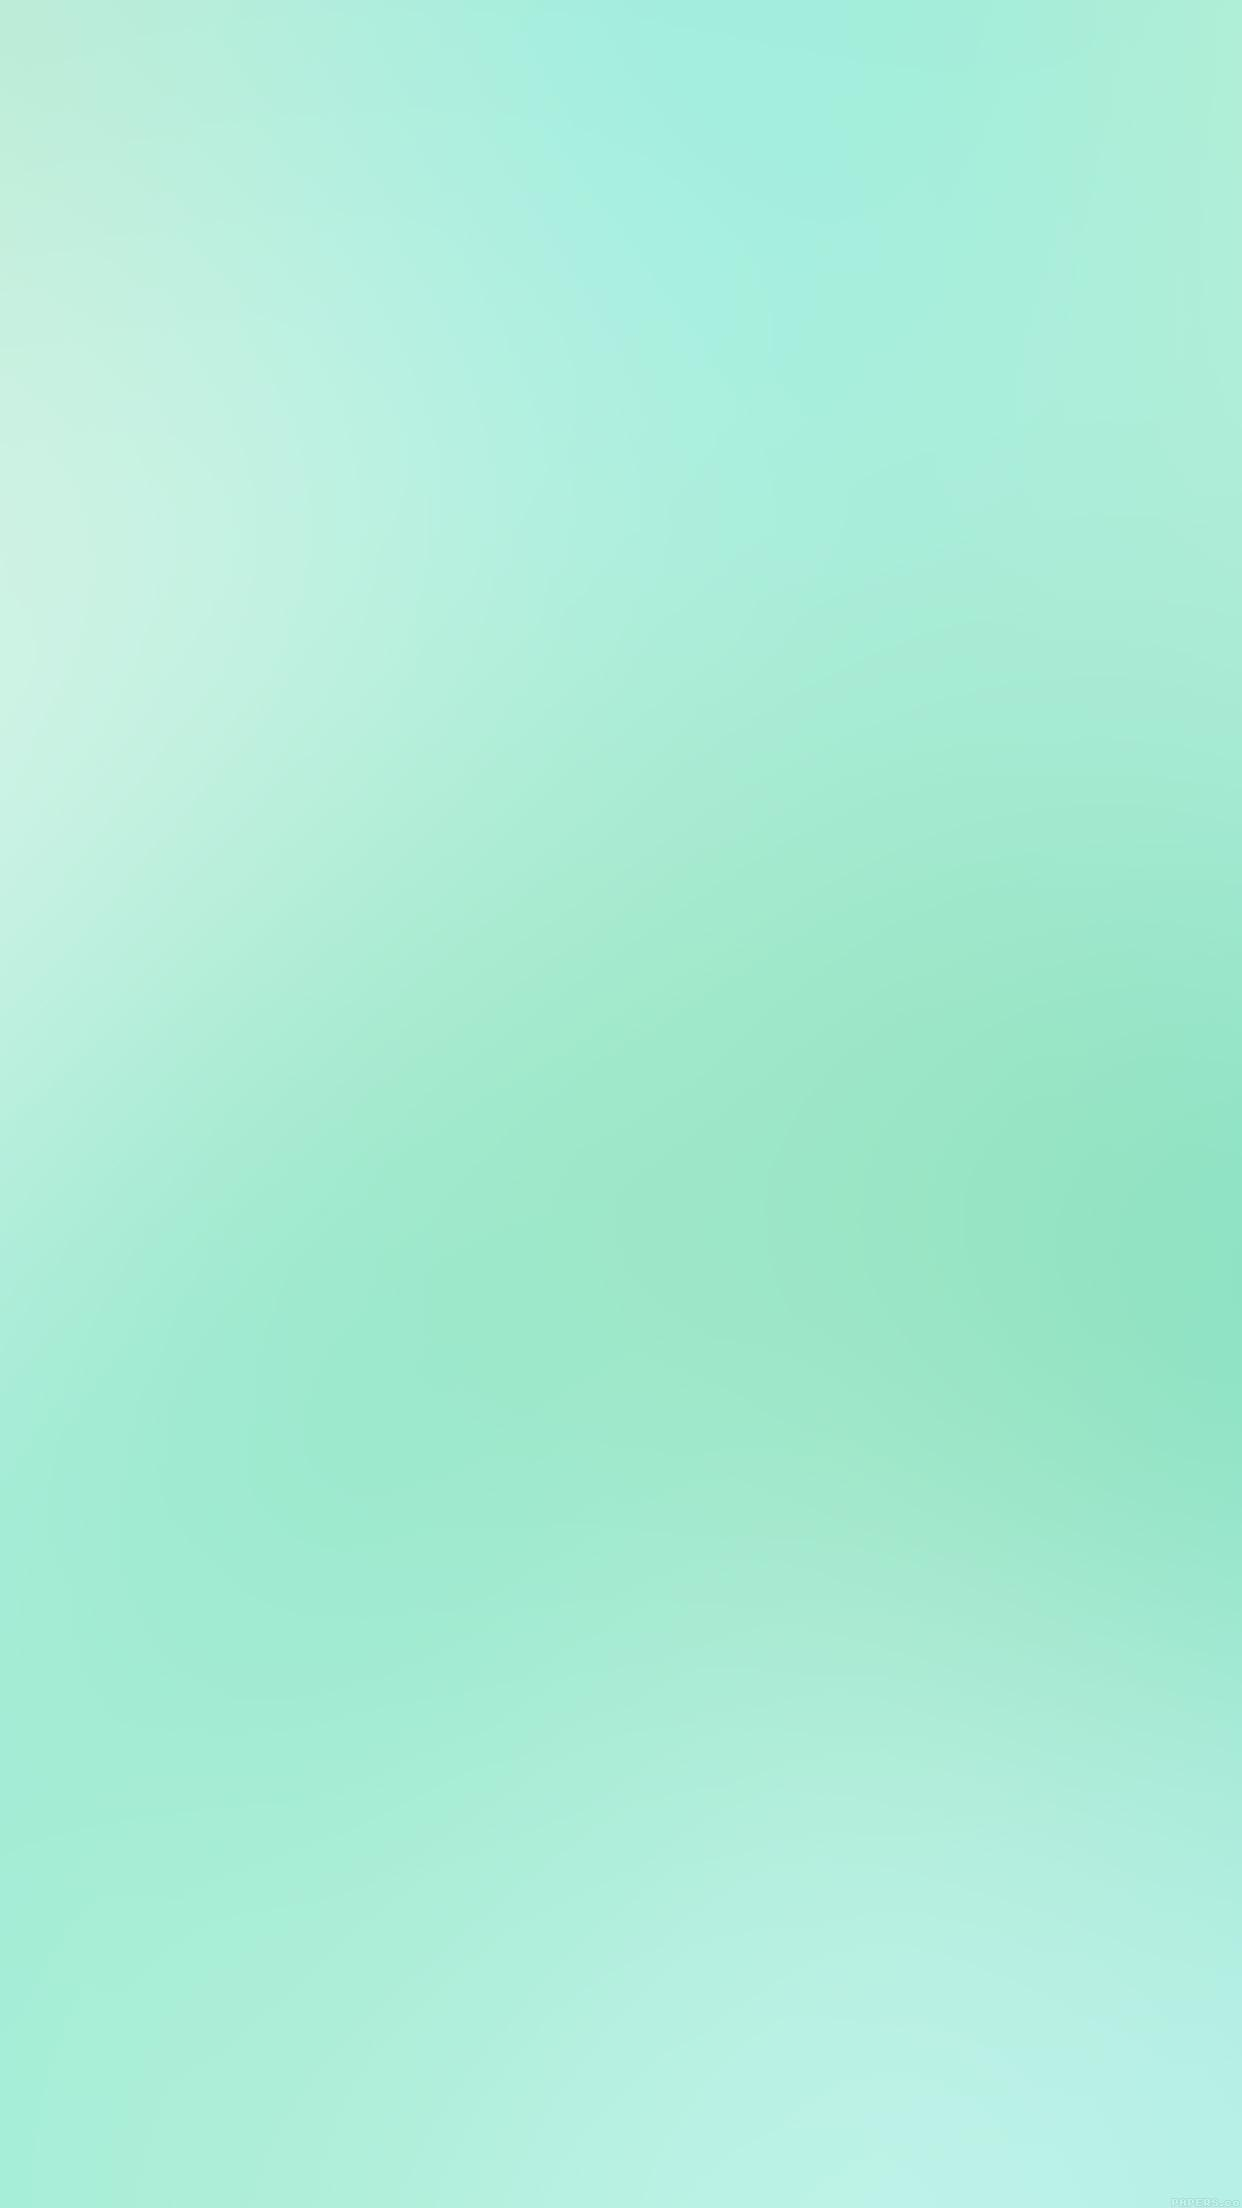 More Iphone X Live Wallpapers Download Pastel Green Wallpaper Gallery